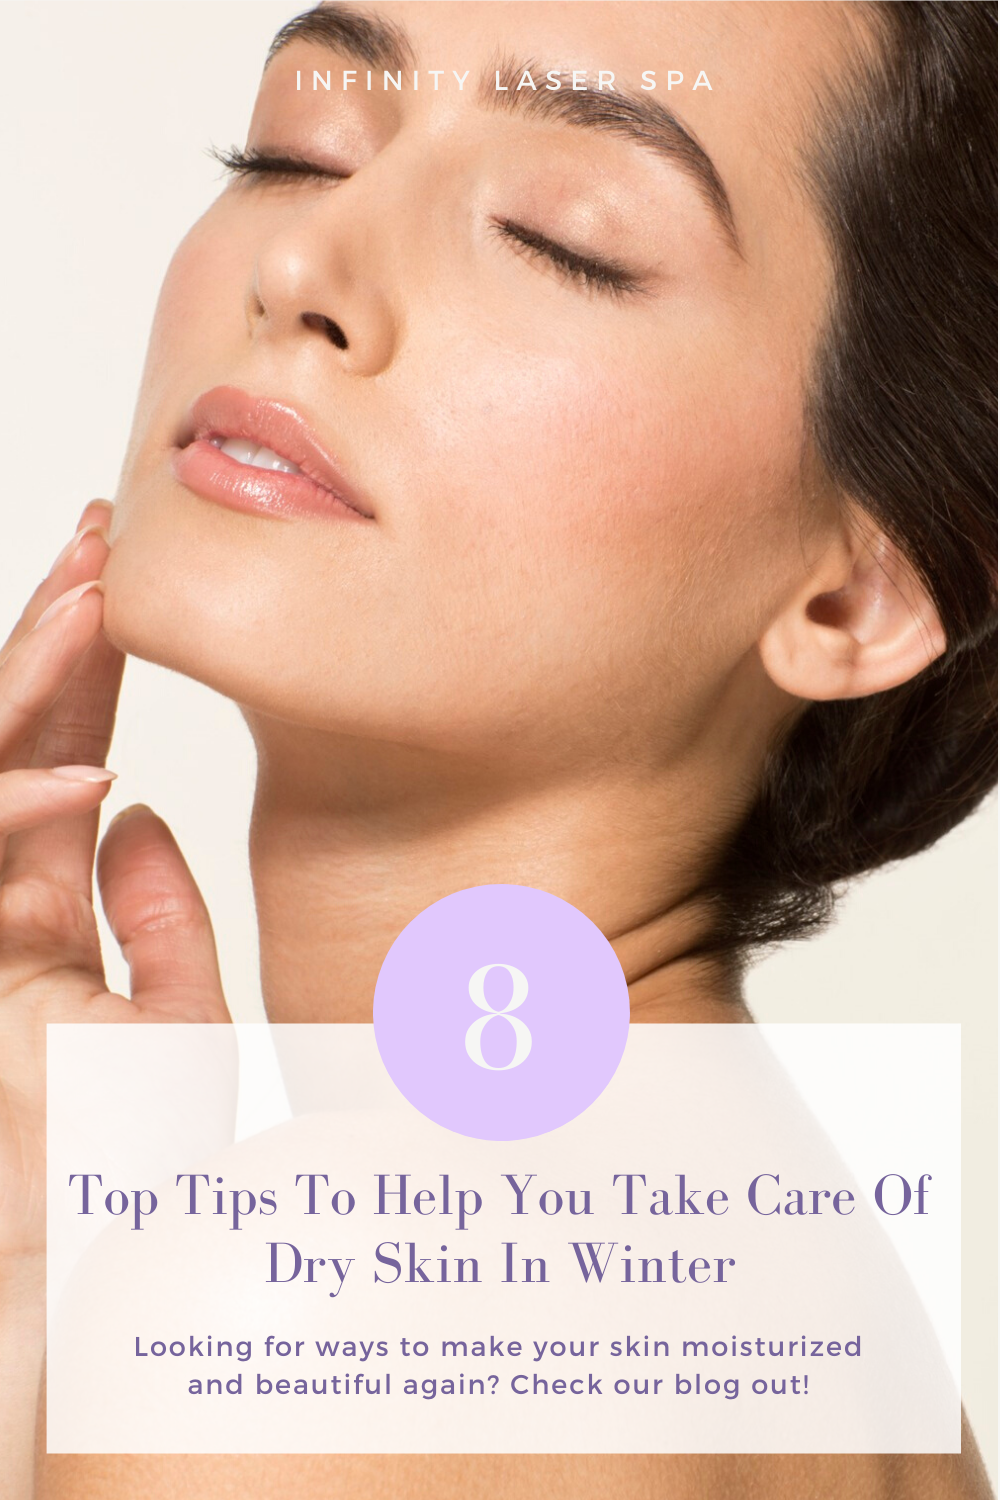 Dry Skin In The Winter And How To Take Care Of It Infinity Laser Spa In 2020 Top Skin Care Products Dry Skin Remedies Skin